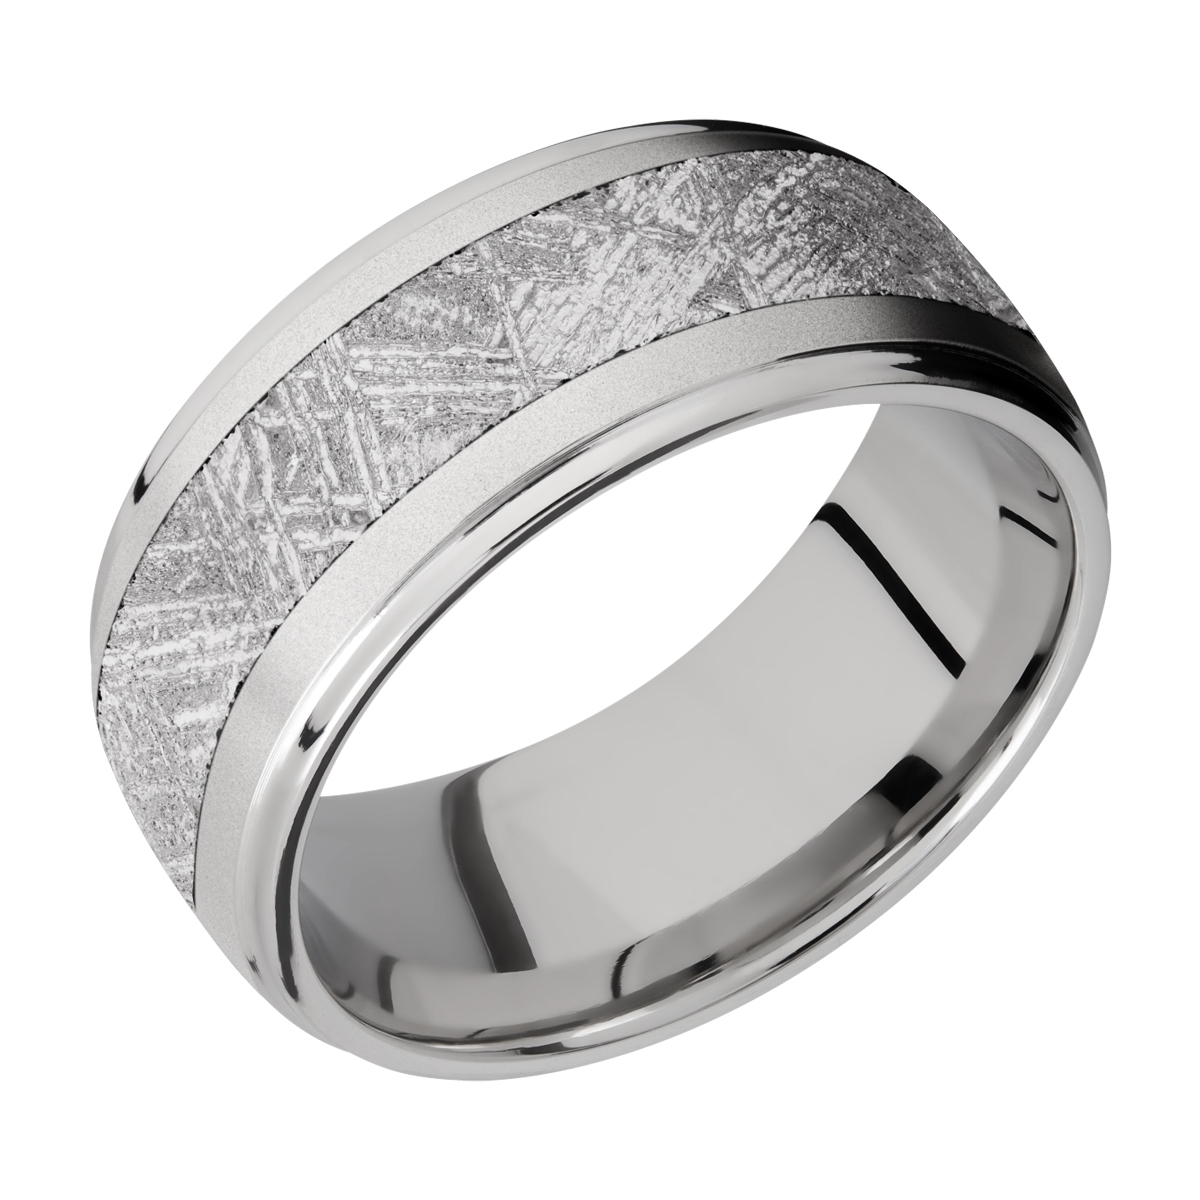 Lashbrook 10DGE15/METEORITE Titanium Wedding Ring or Band